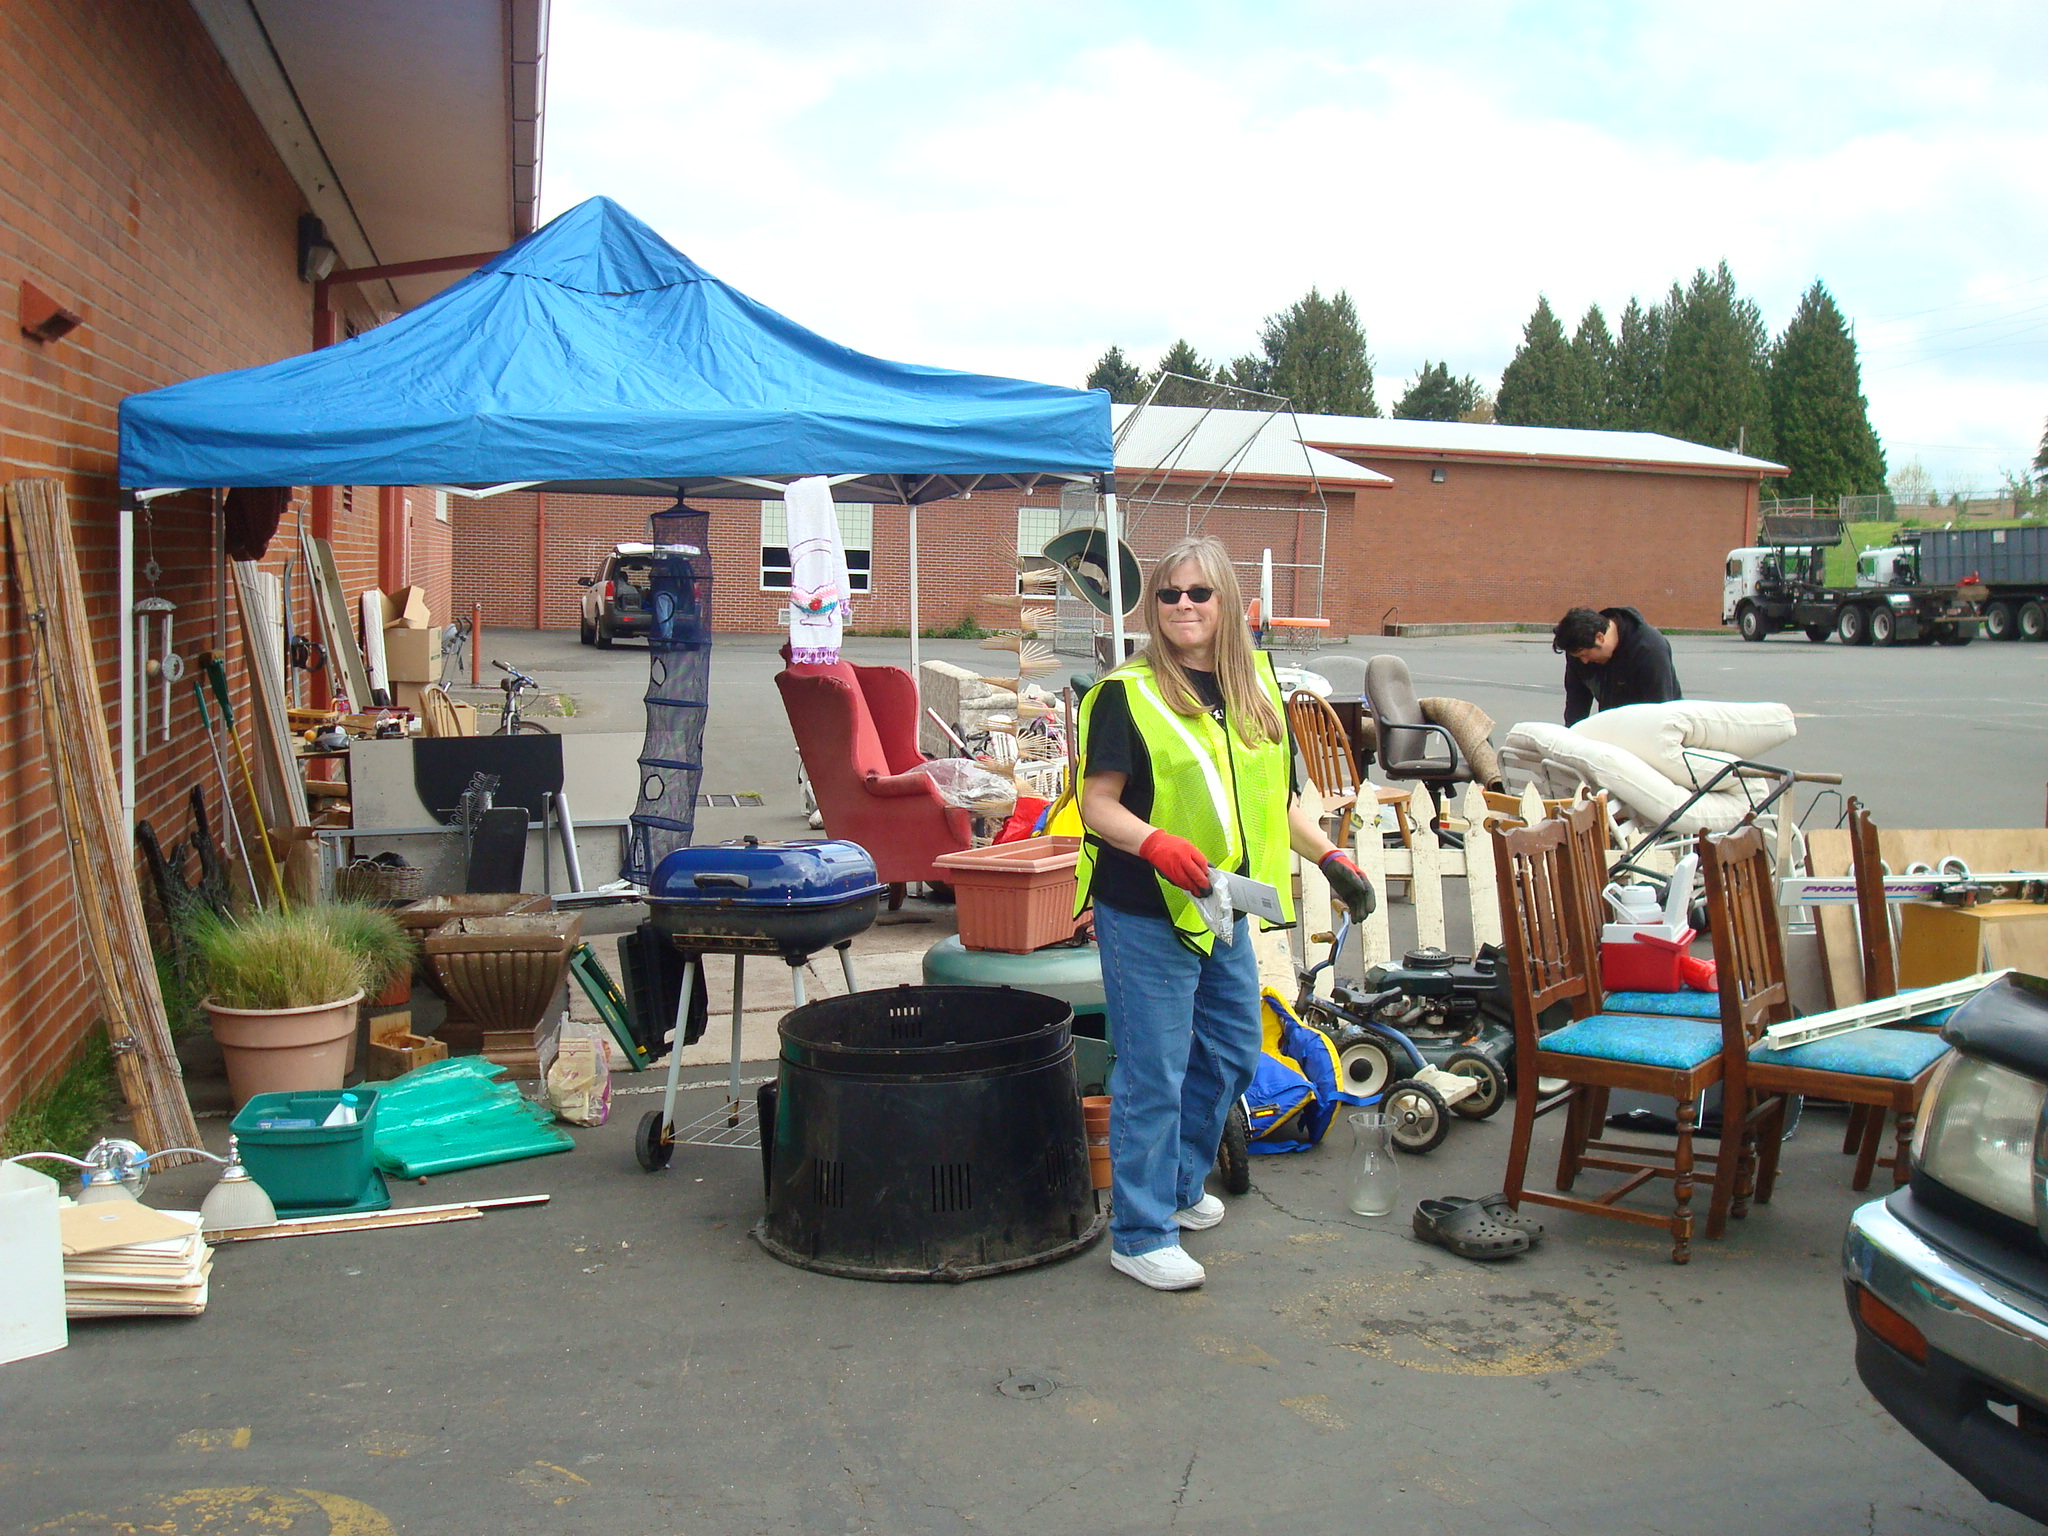 North Tabor/Mt. Tabor Cleanup and Resale Event Participates in Reuse Pilot Program – April 26th 9am-1pm